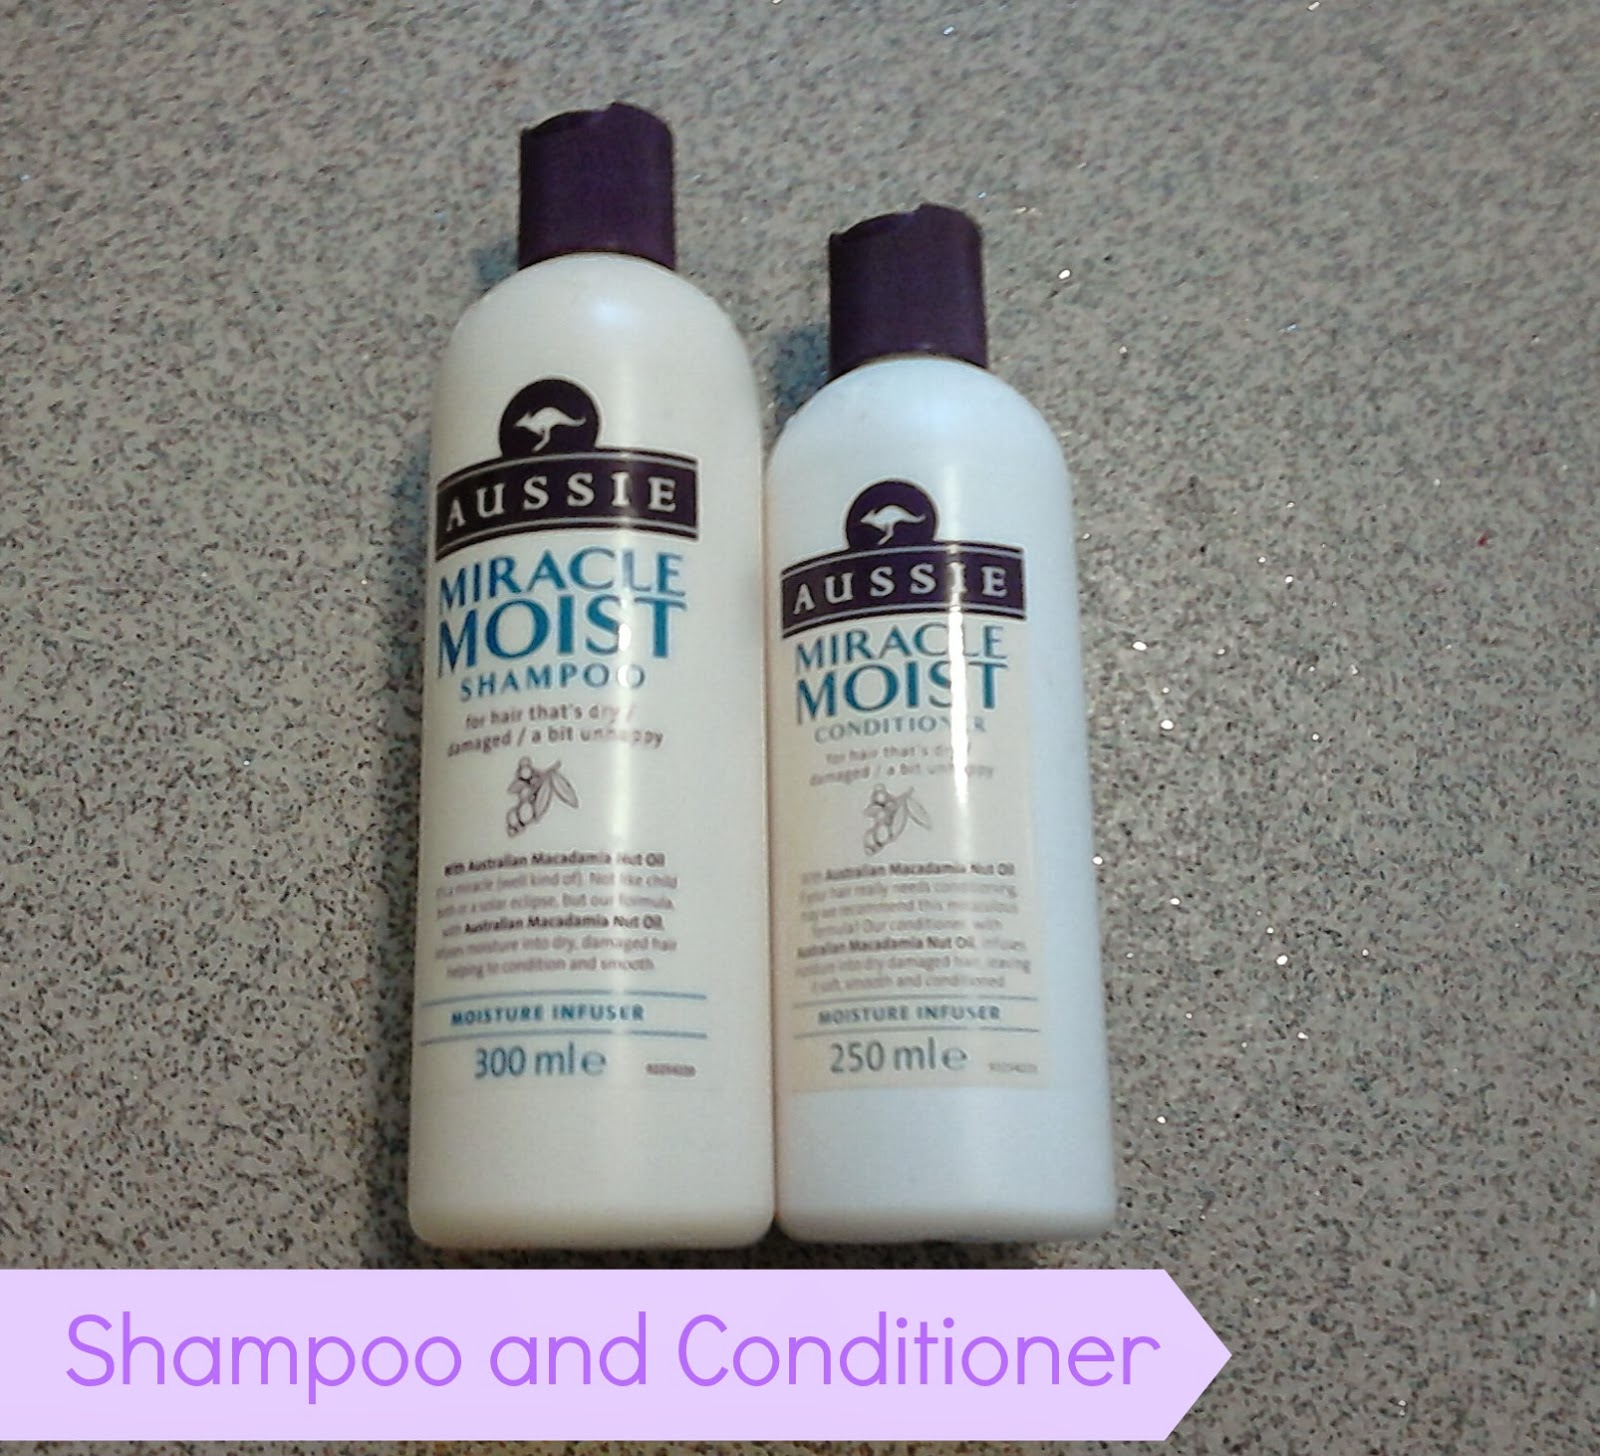 Aussie Miracle Moist Shampoo and Conditioner